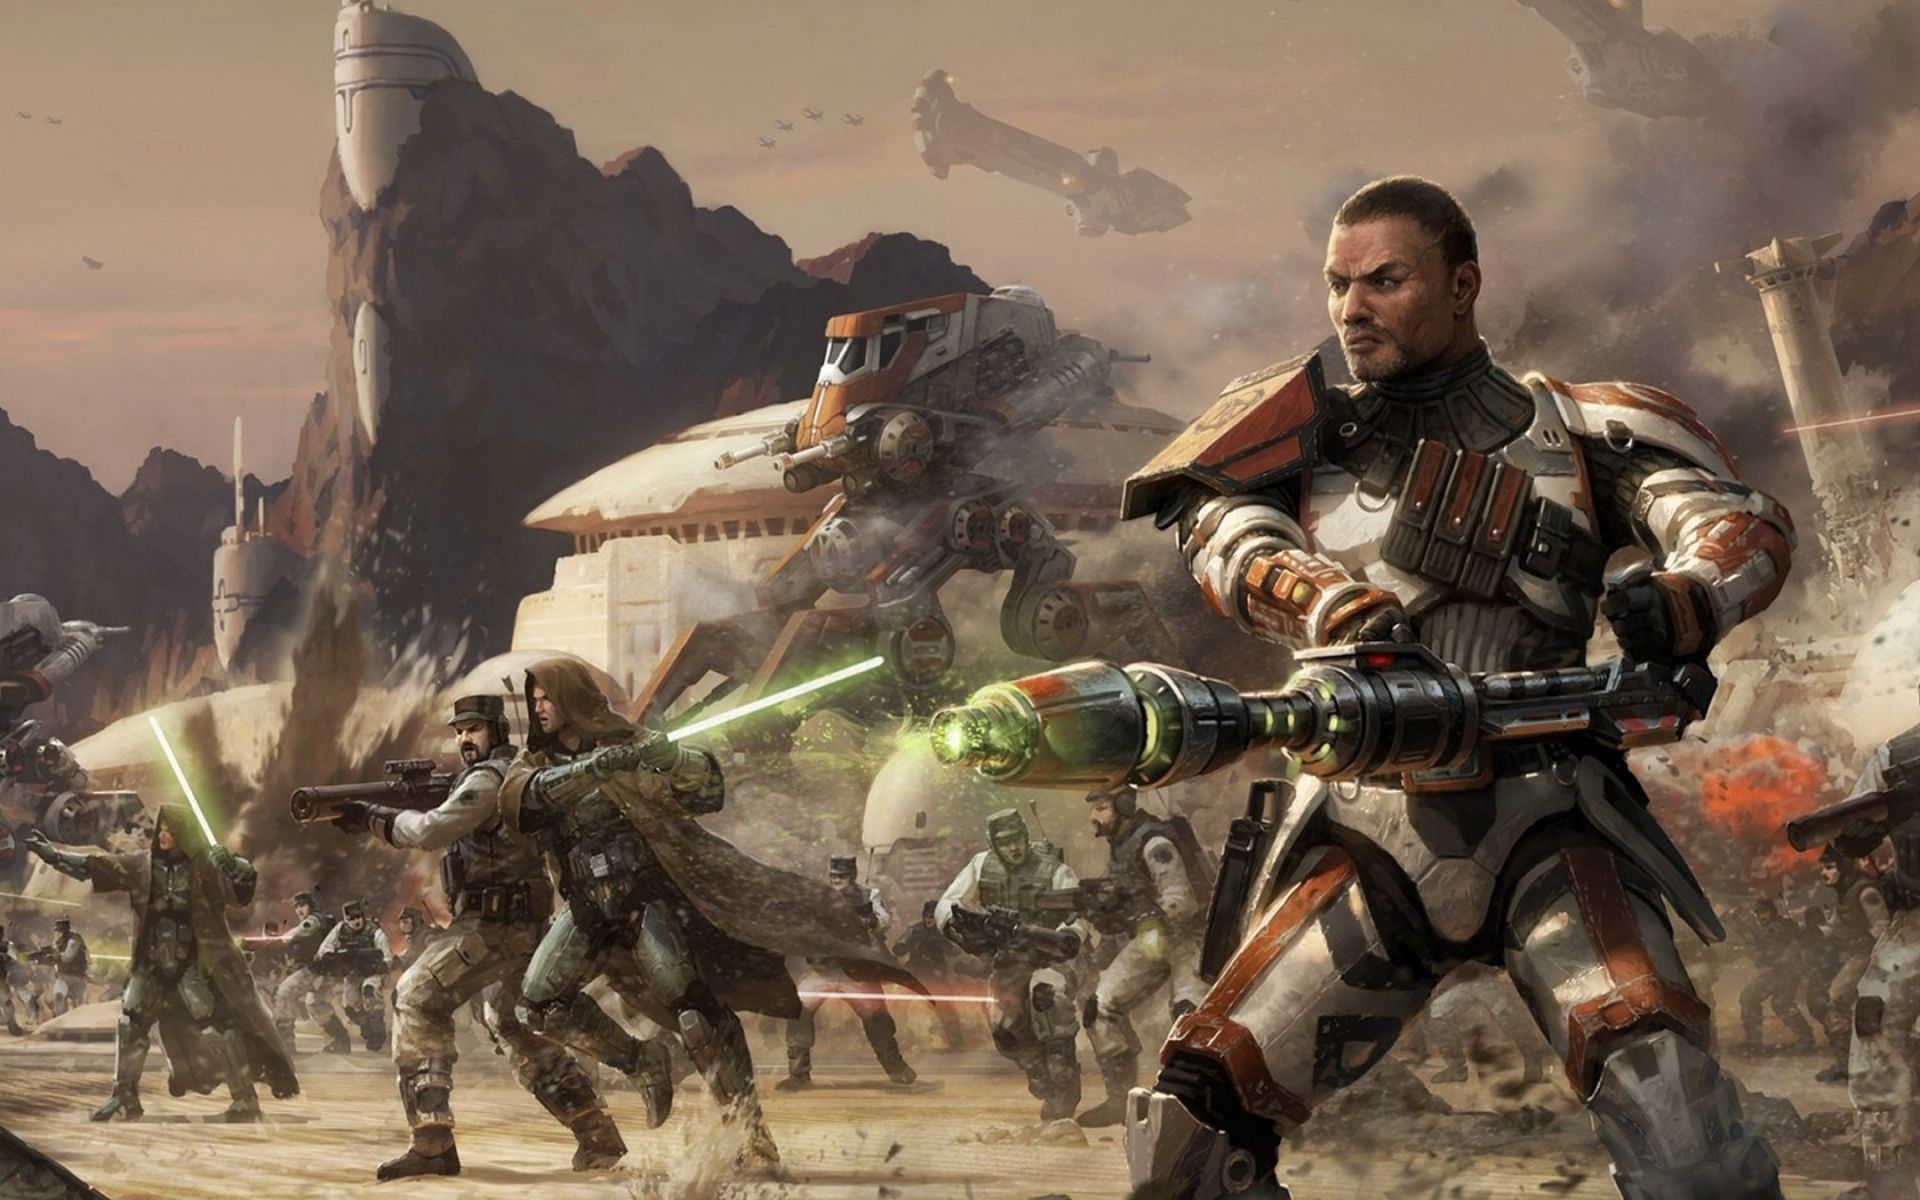 Video Game Star Wars The Old Republic Commander Cody Star Wars Game Sci Fi Robot Battle Commander Futuristic Republic Old Republic Wallpap Star Wars Art Star Wars Images Star Wars Wallpaper